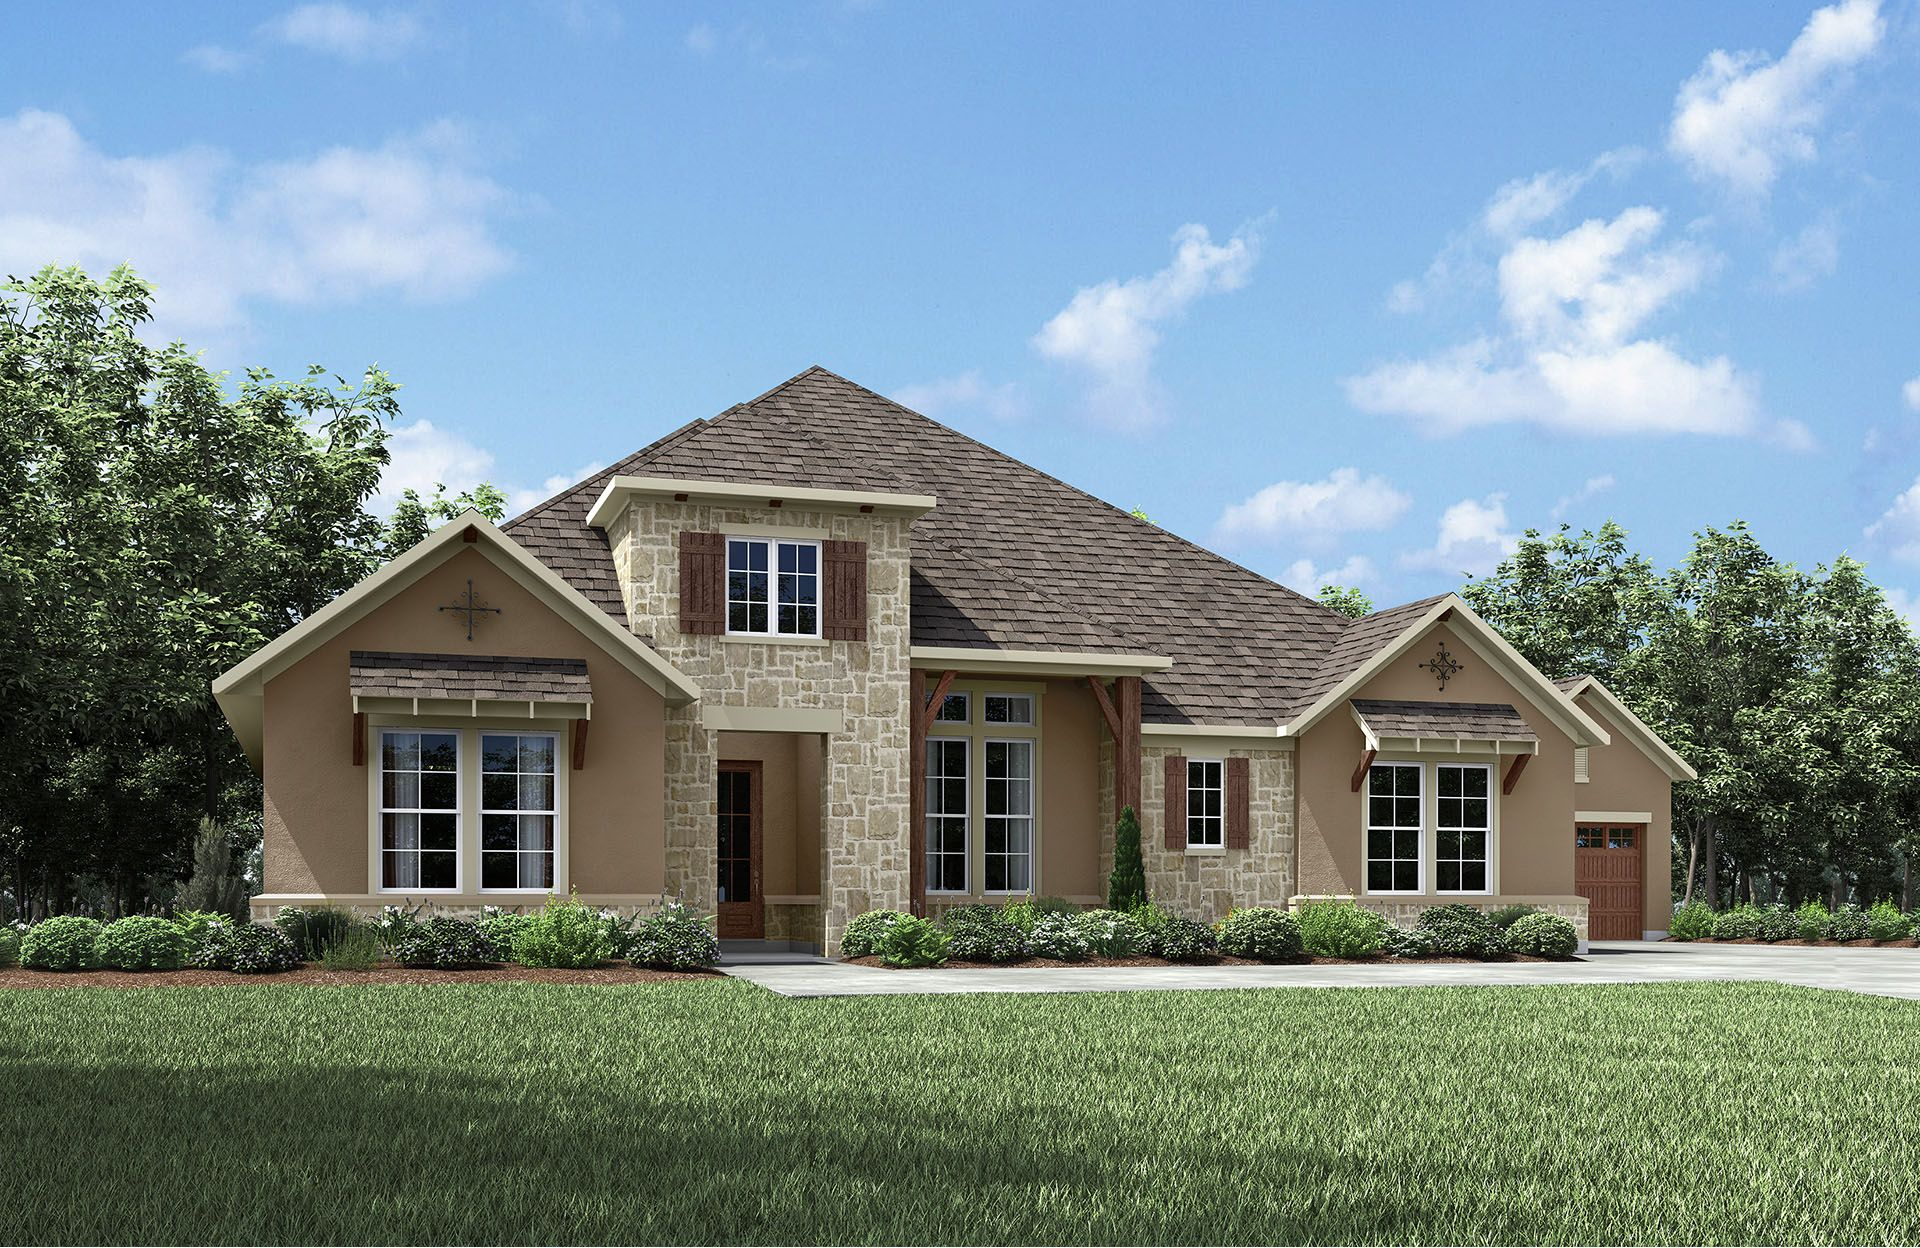 Single Family for Active at Caliterra - Castella Ii 131 Waters View Court Dripping Springs, Texas 78620 United States